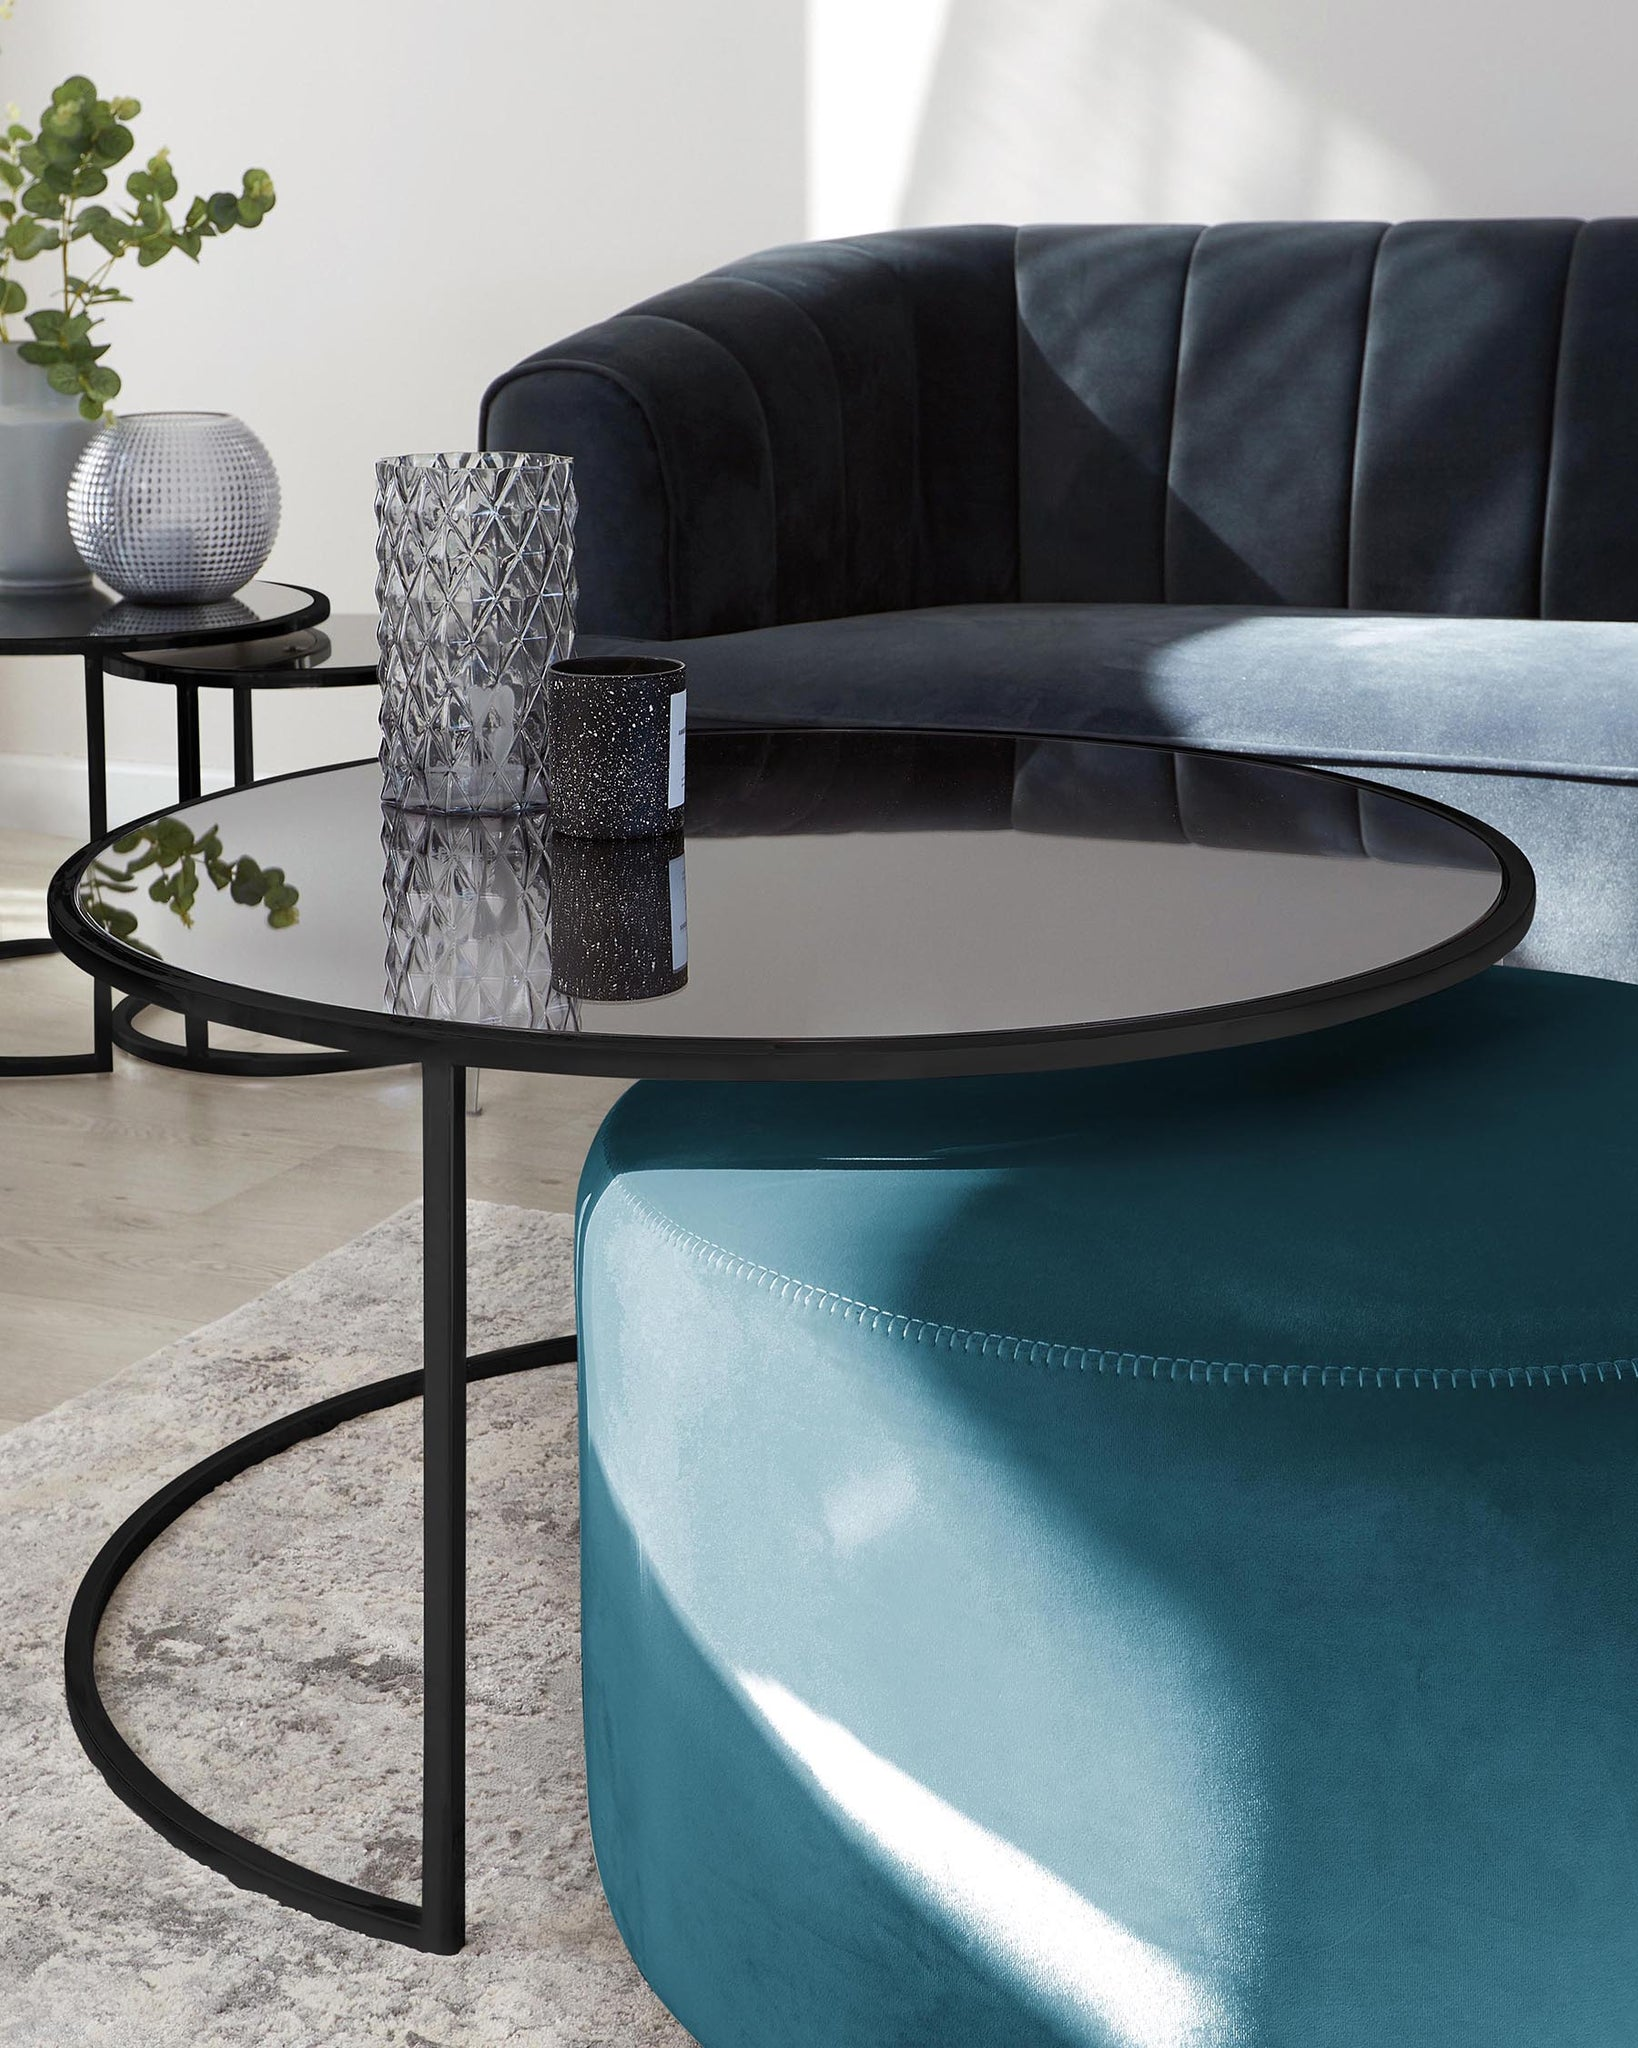 Thea Black Round Coffee Table and Dark Teal Pouffe Set